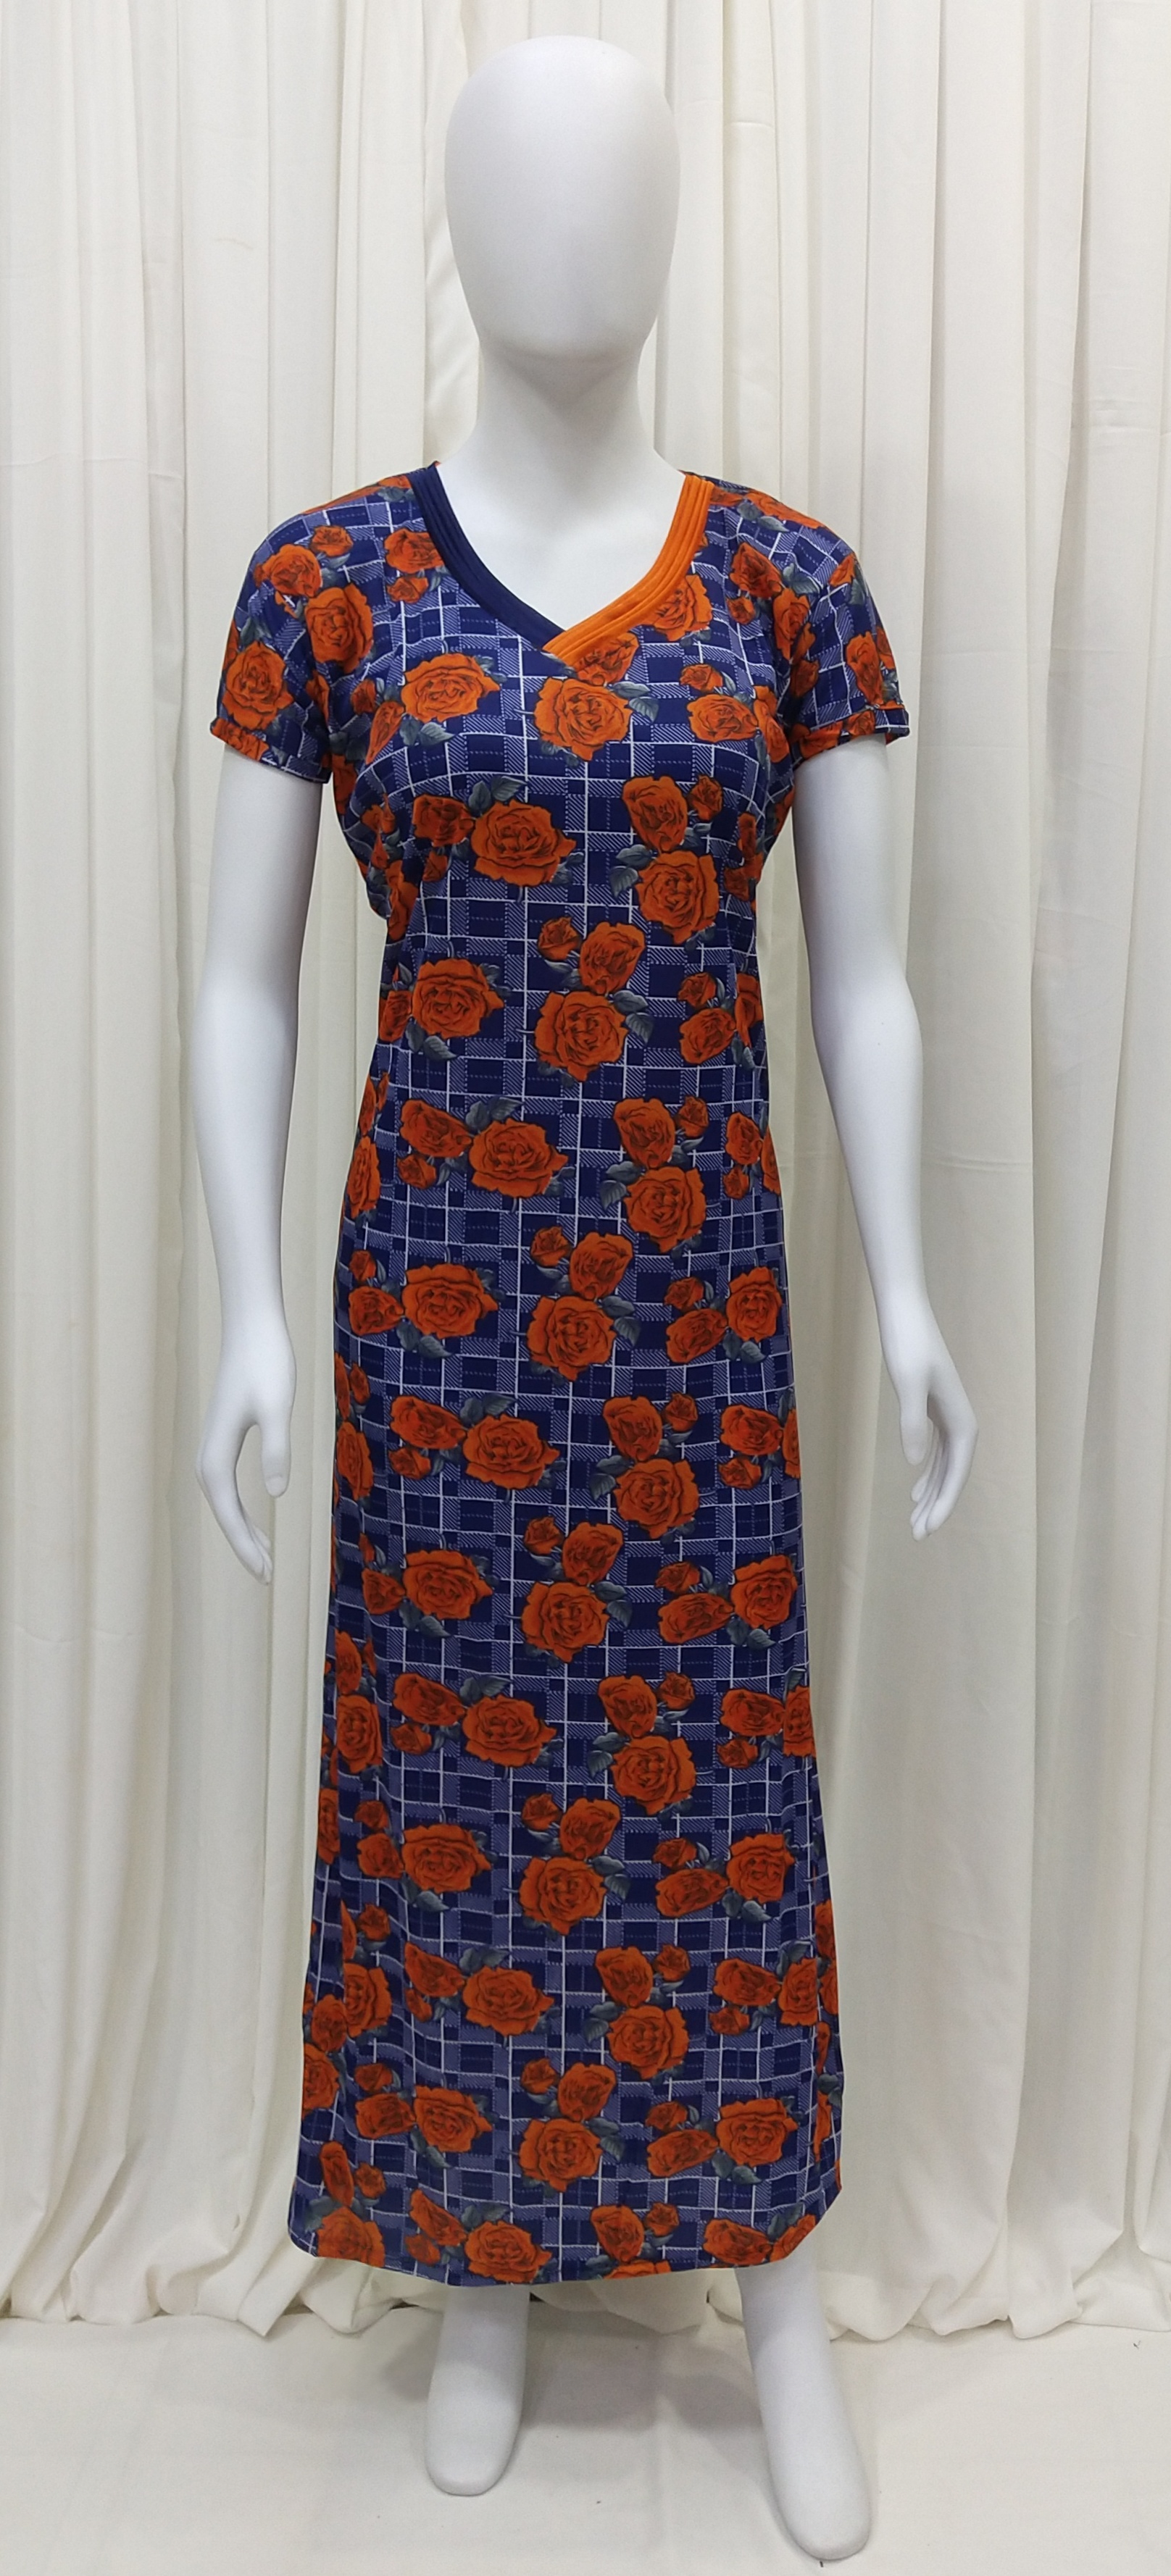 Rose Floral Print With Checkered Design Women Lycra Night Gown (Free Size, Orange Floral)